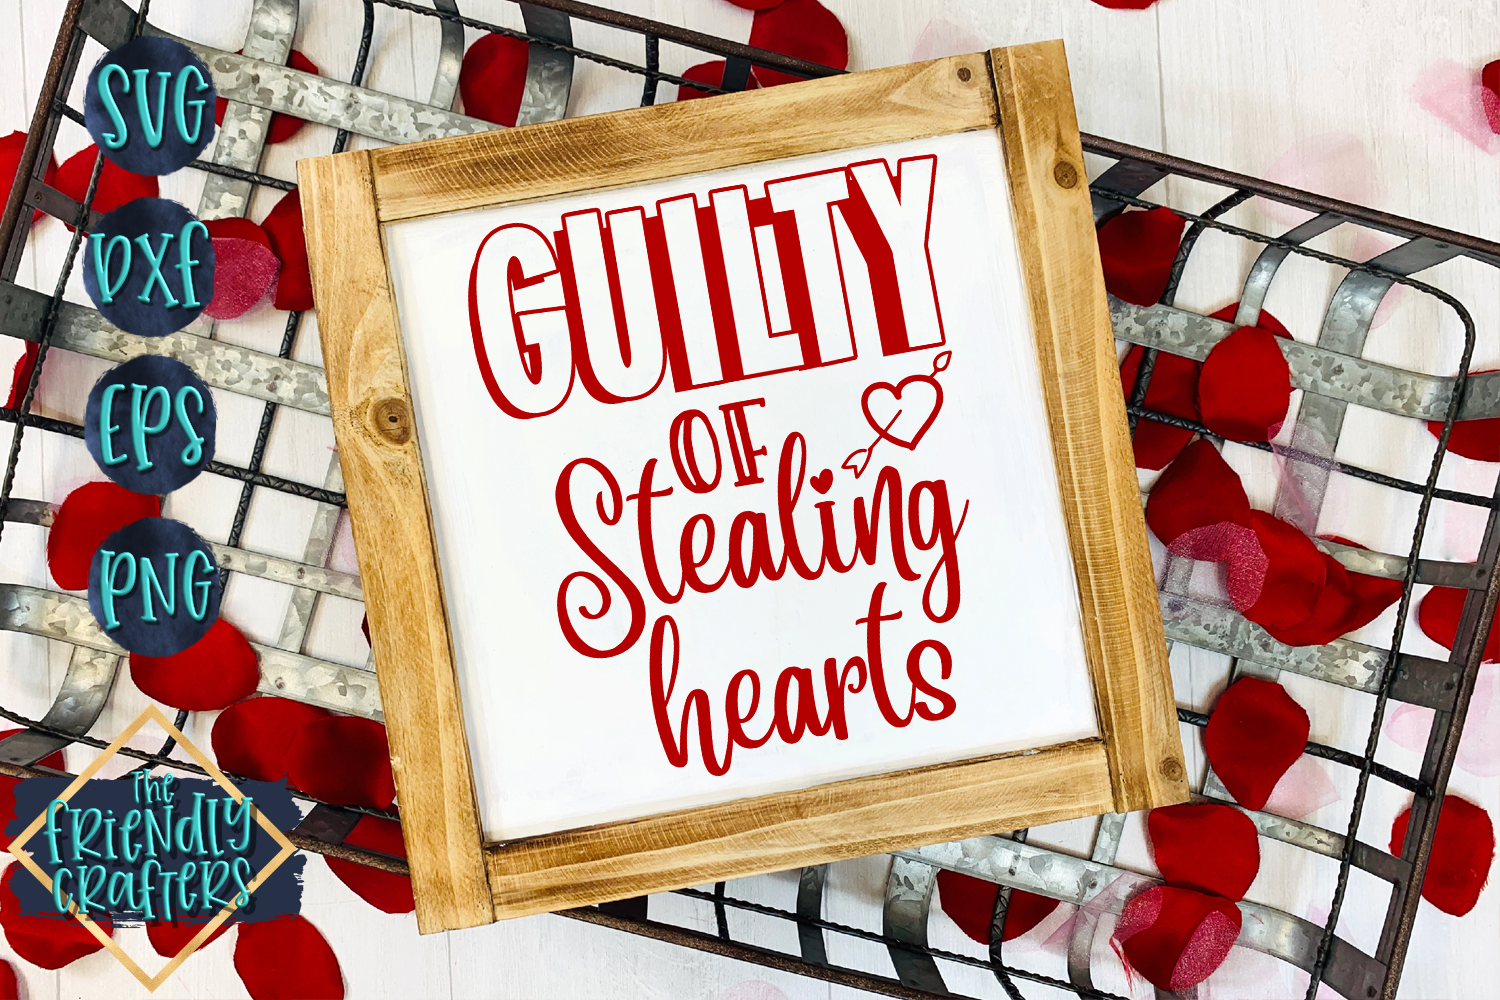 Guilty of Stealing Hearts example image 3